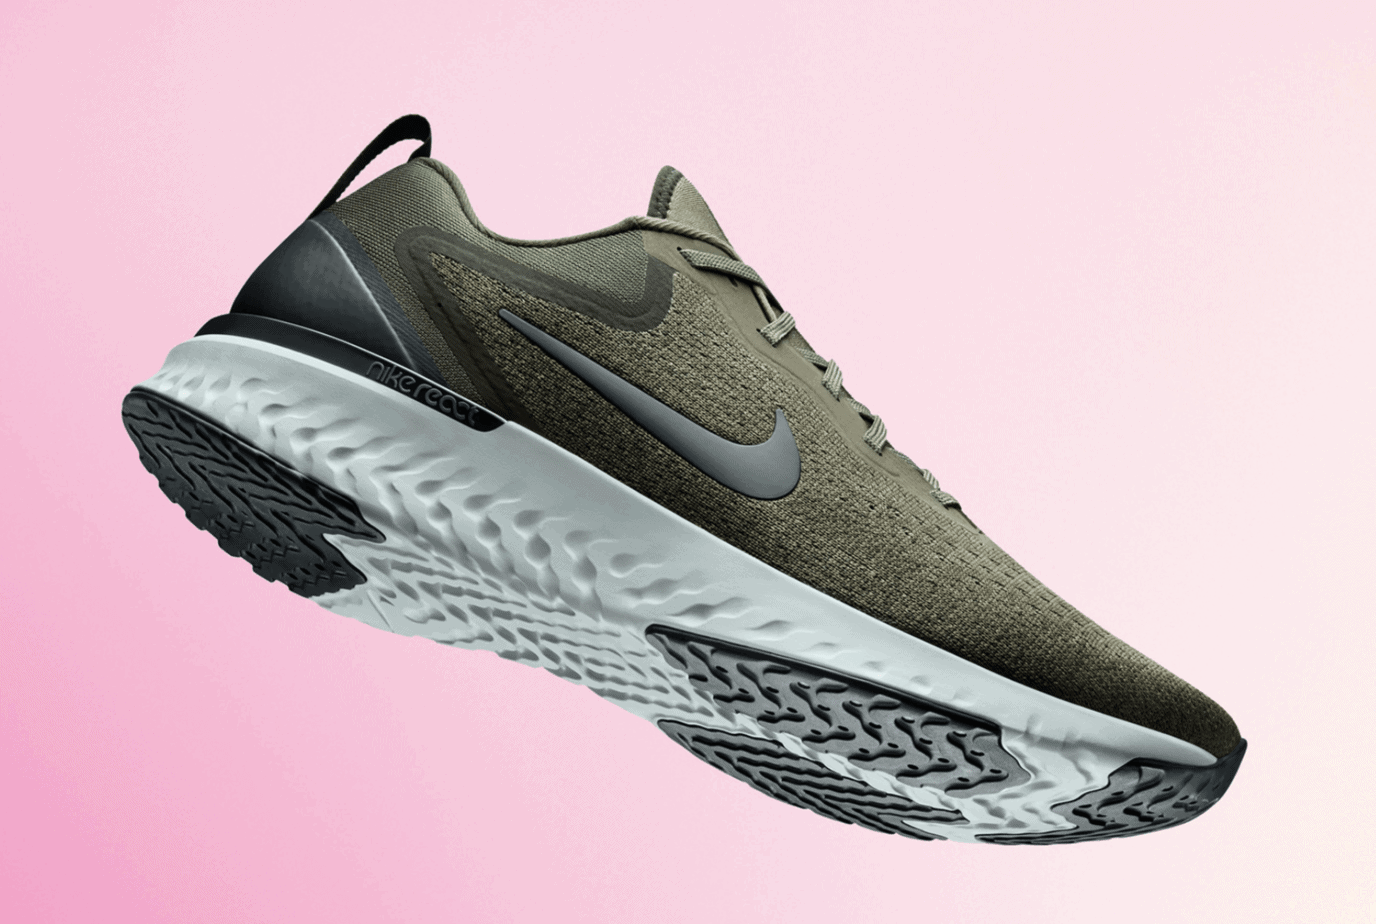 Nike Recently Found Success With Their New React Cushioning The Foam First Debuted On Epic Flyknit A Lightweight Running Shoe